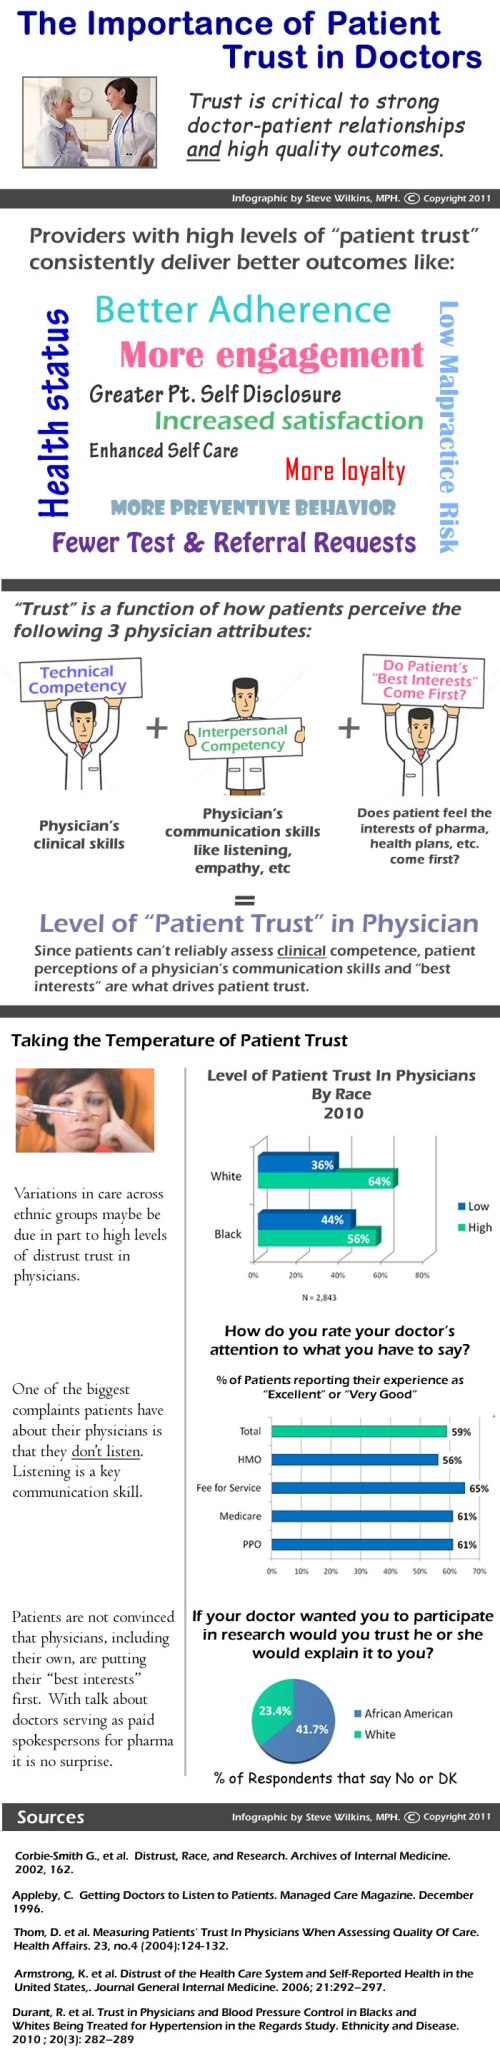 Patient Trust in Their Doctor